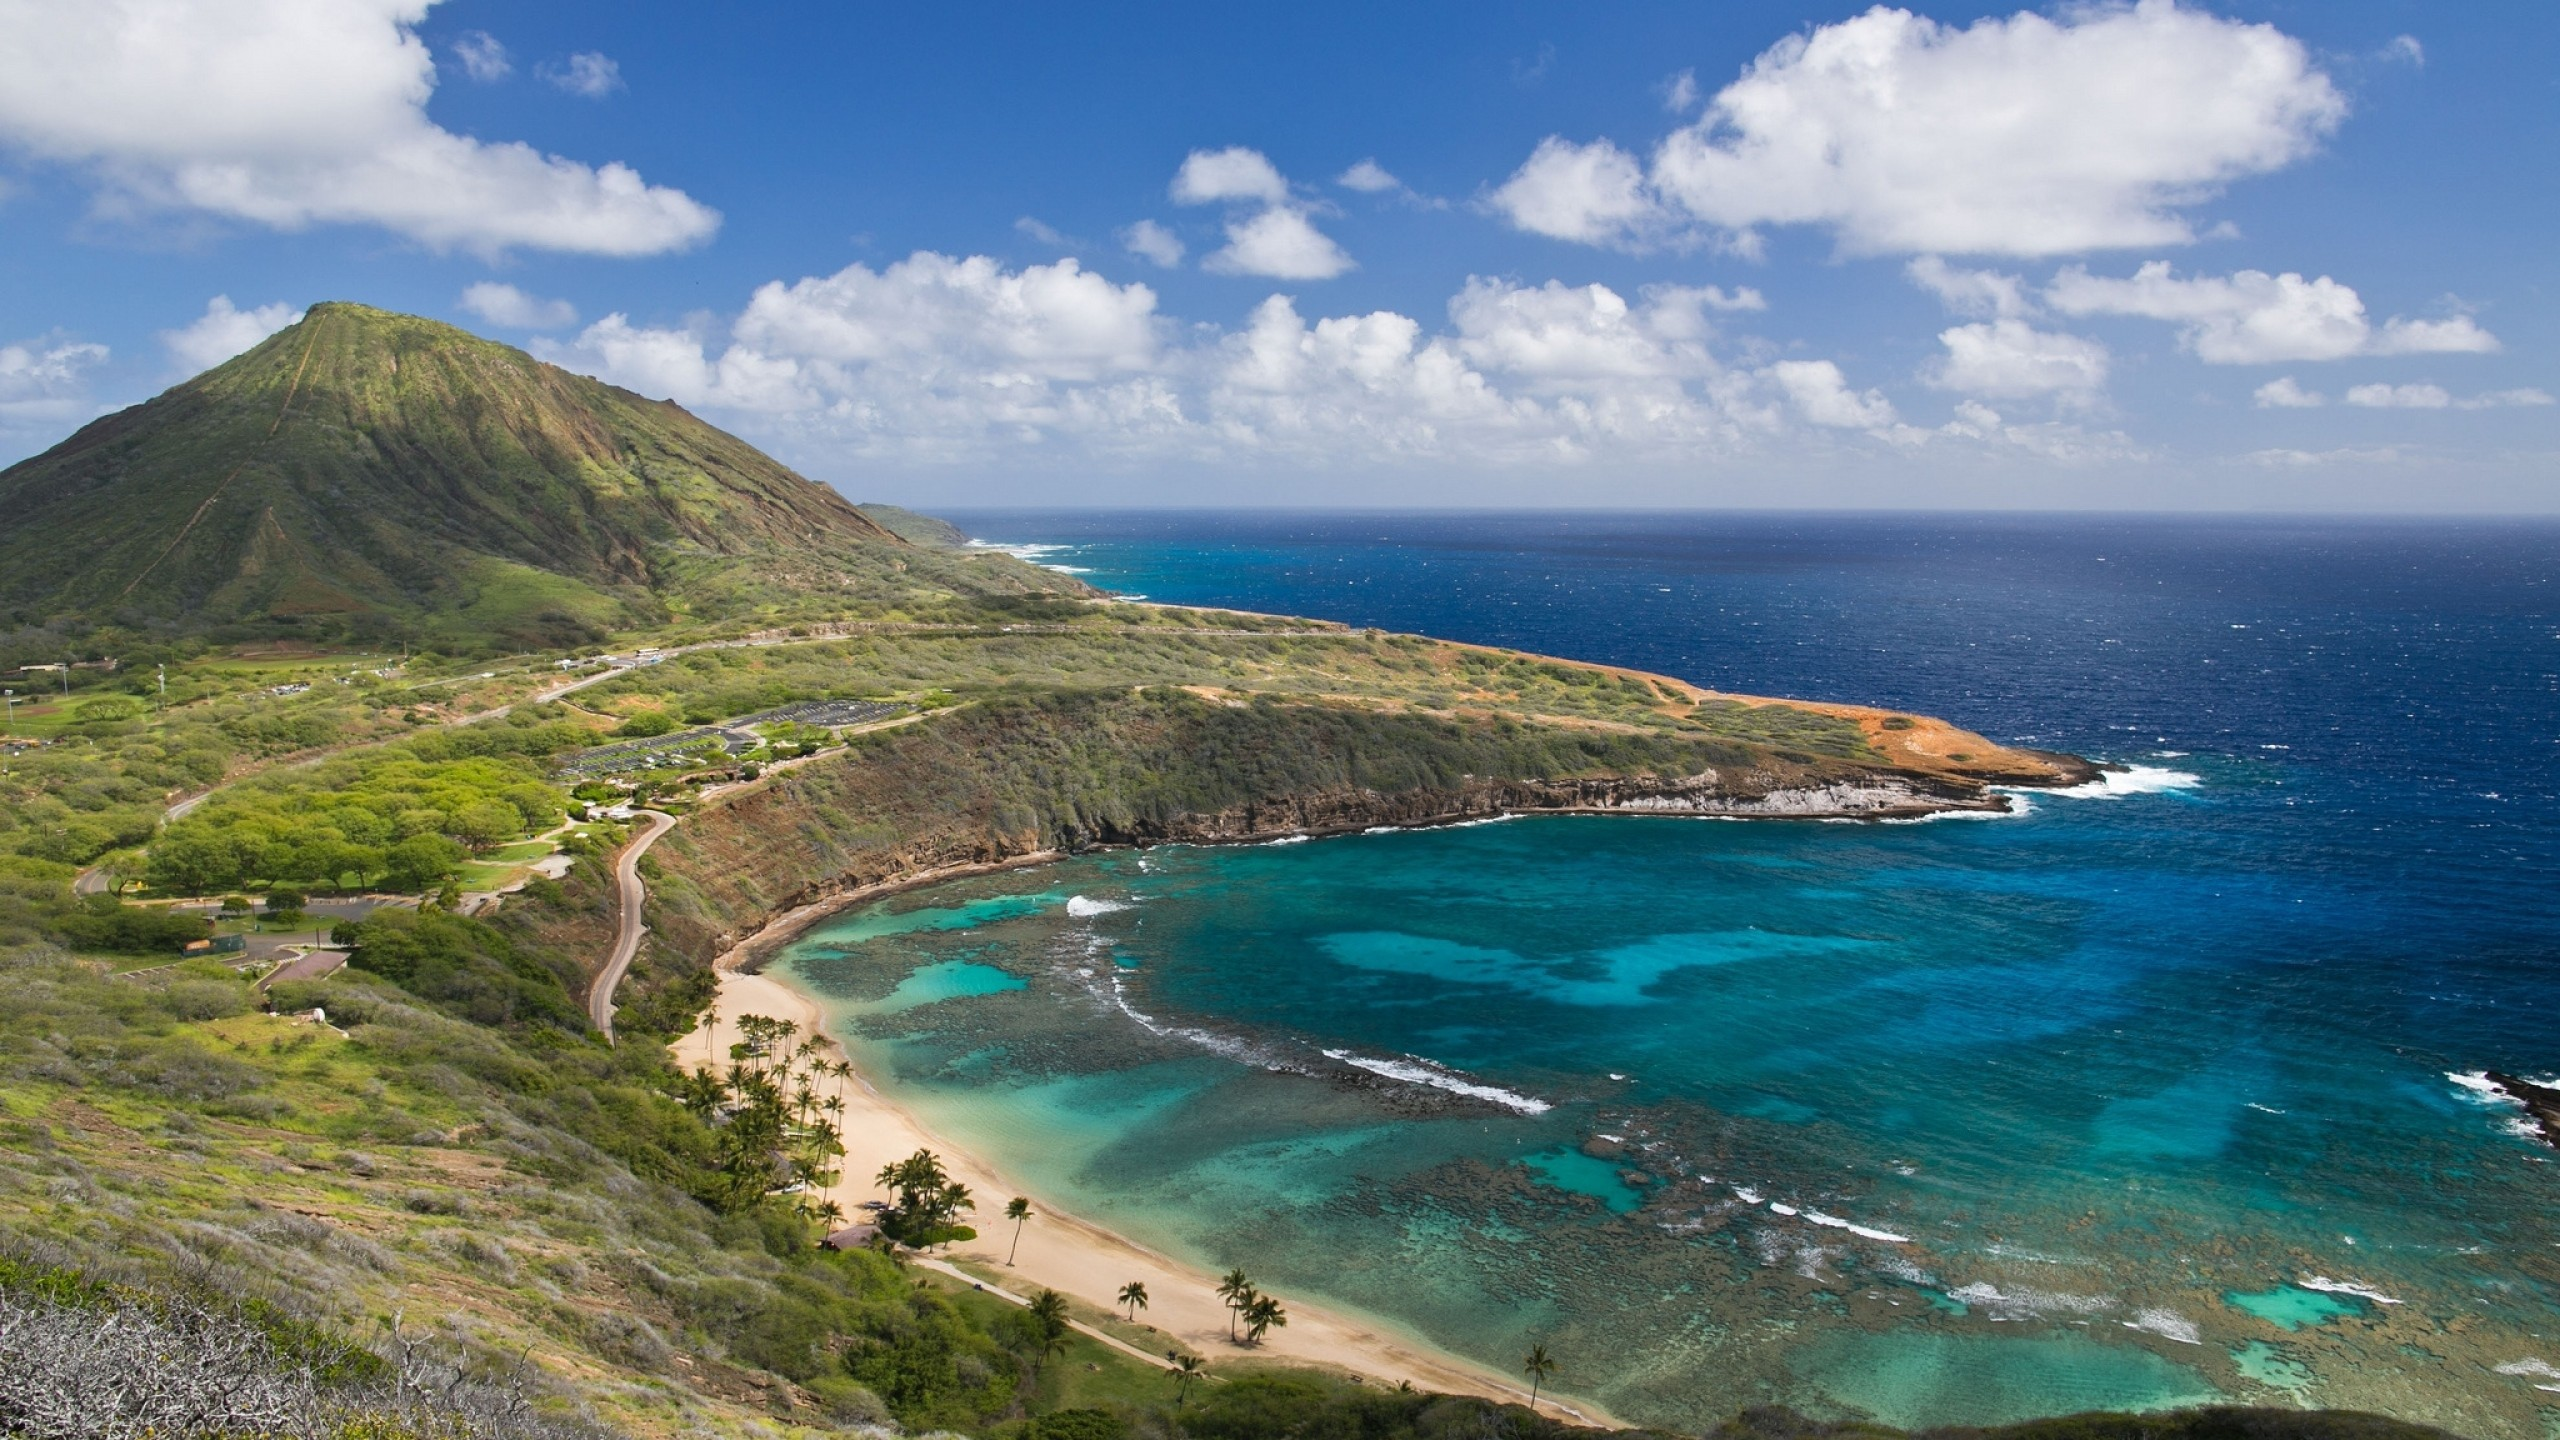 2560x1440 Preview wallpaper hanauma bay, oahu island, hawai, oahu, hawaii, mountain,